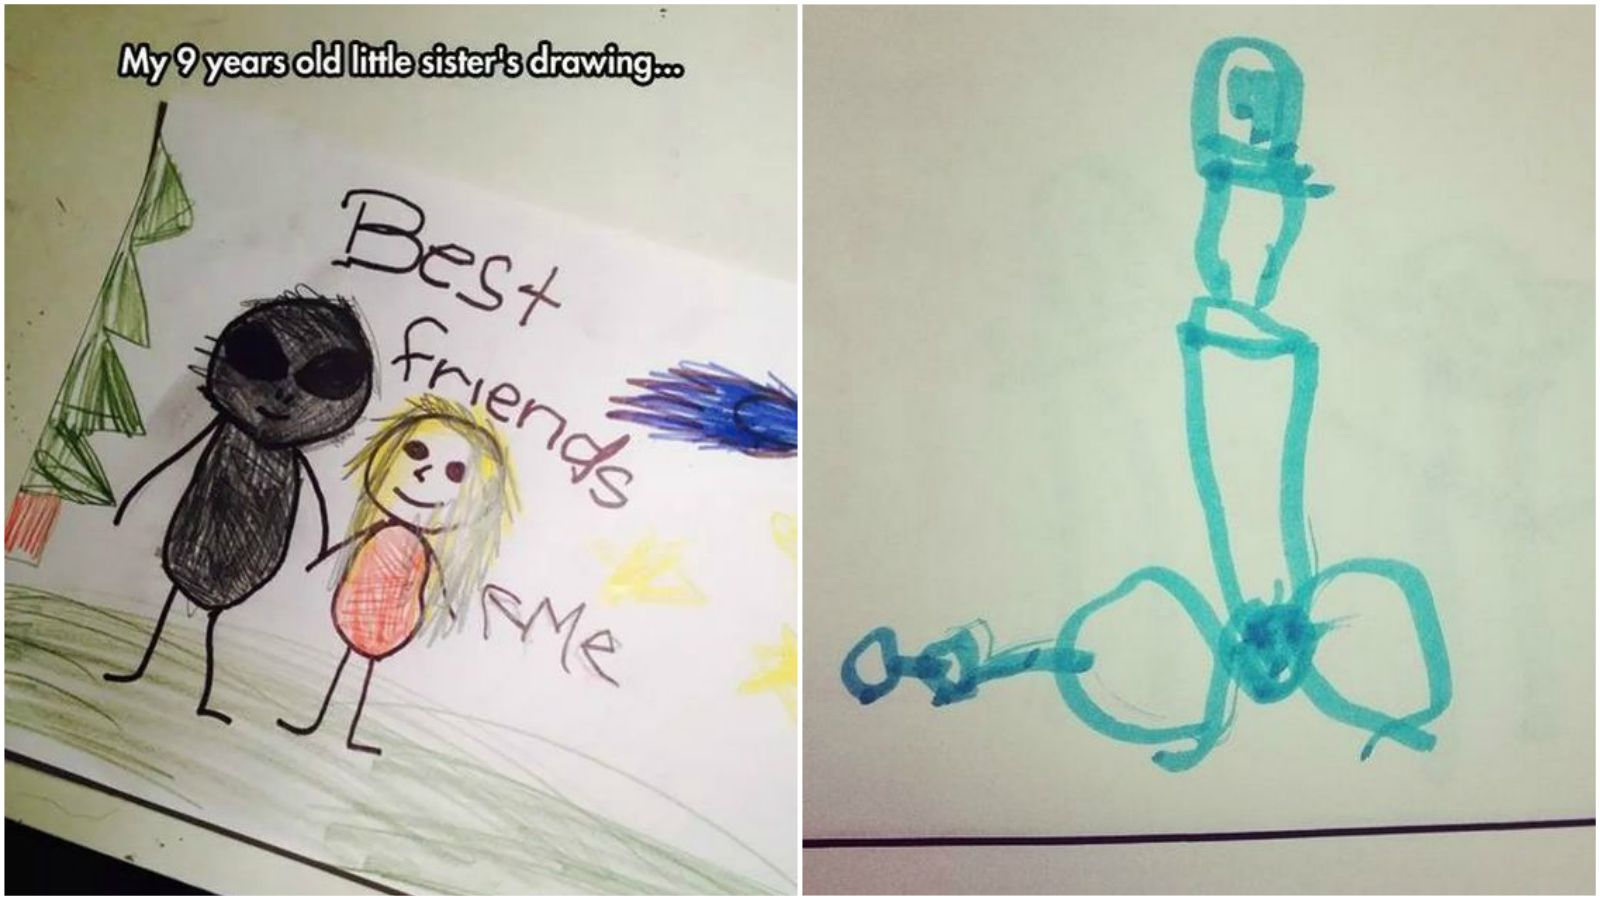 35 Funny Drawings from Kids. They're Hilariously Inappropriate but #3 Really Had Me LOL.